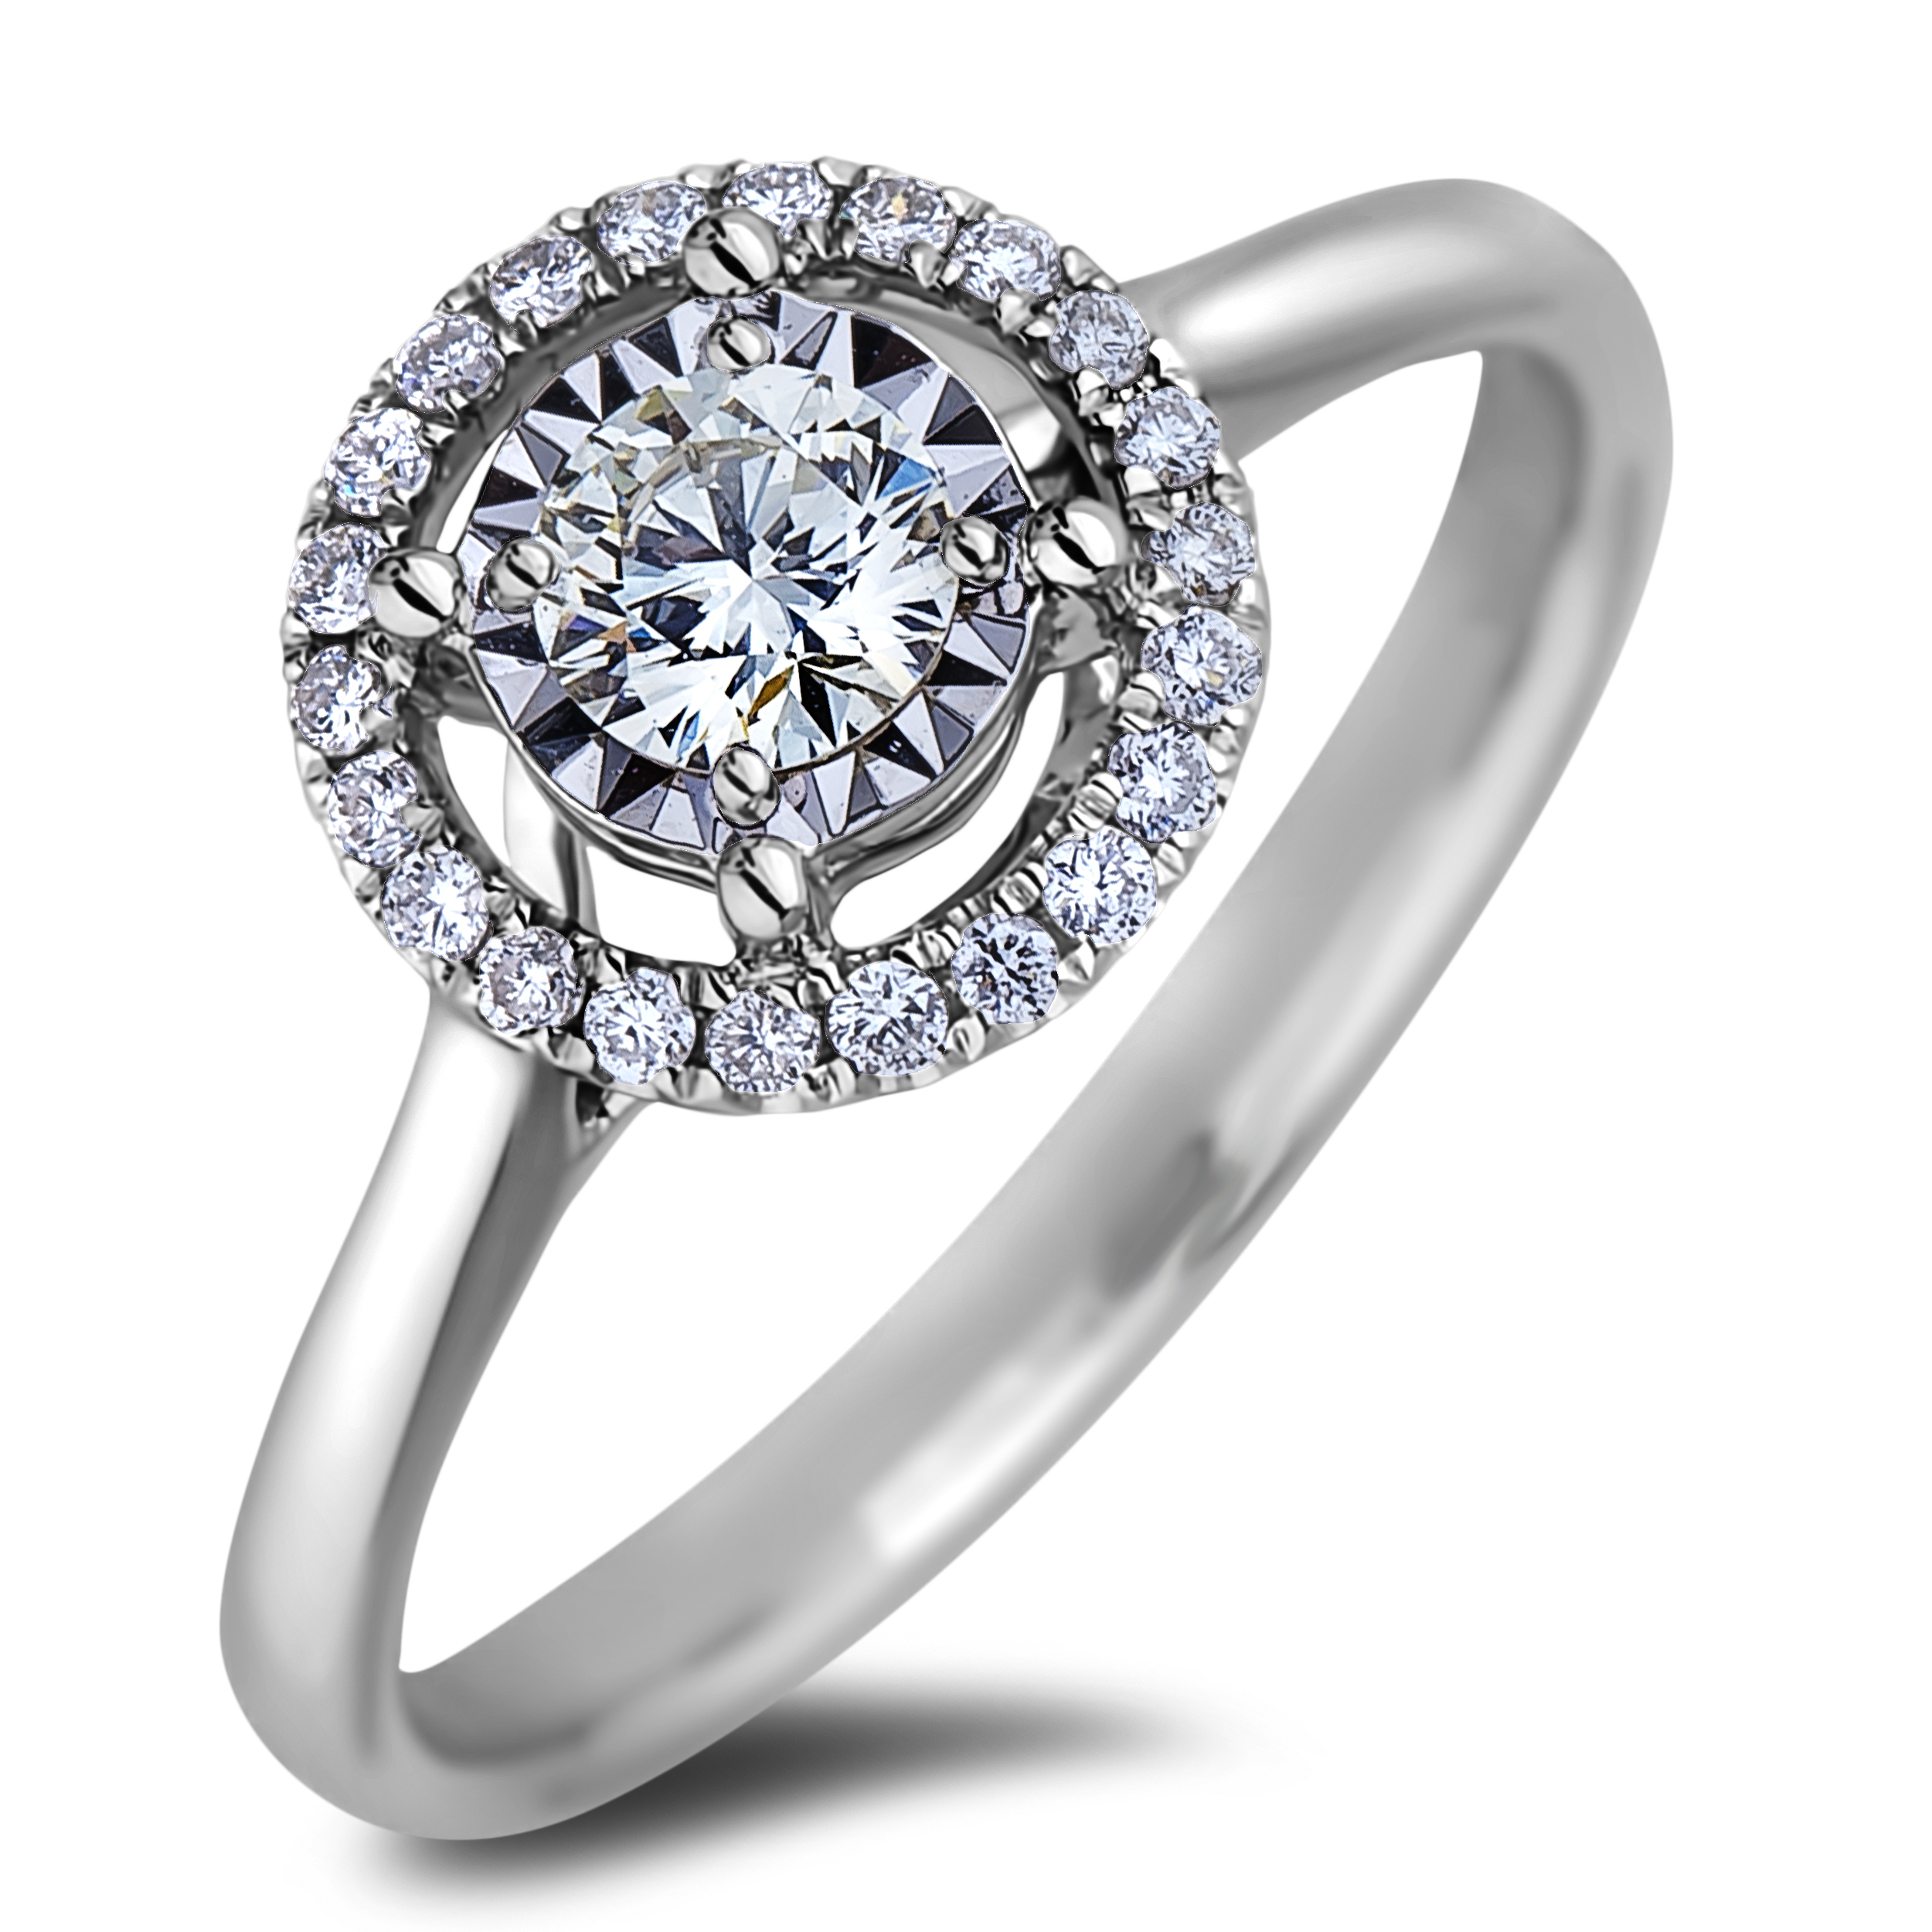 Diamond Engagement Halo Rings JSL_AFCR1423035 (Rings)